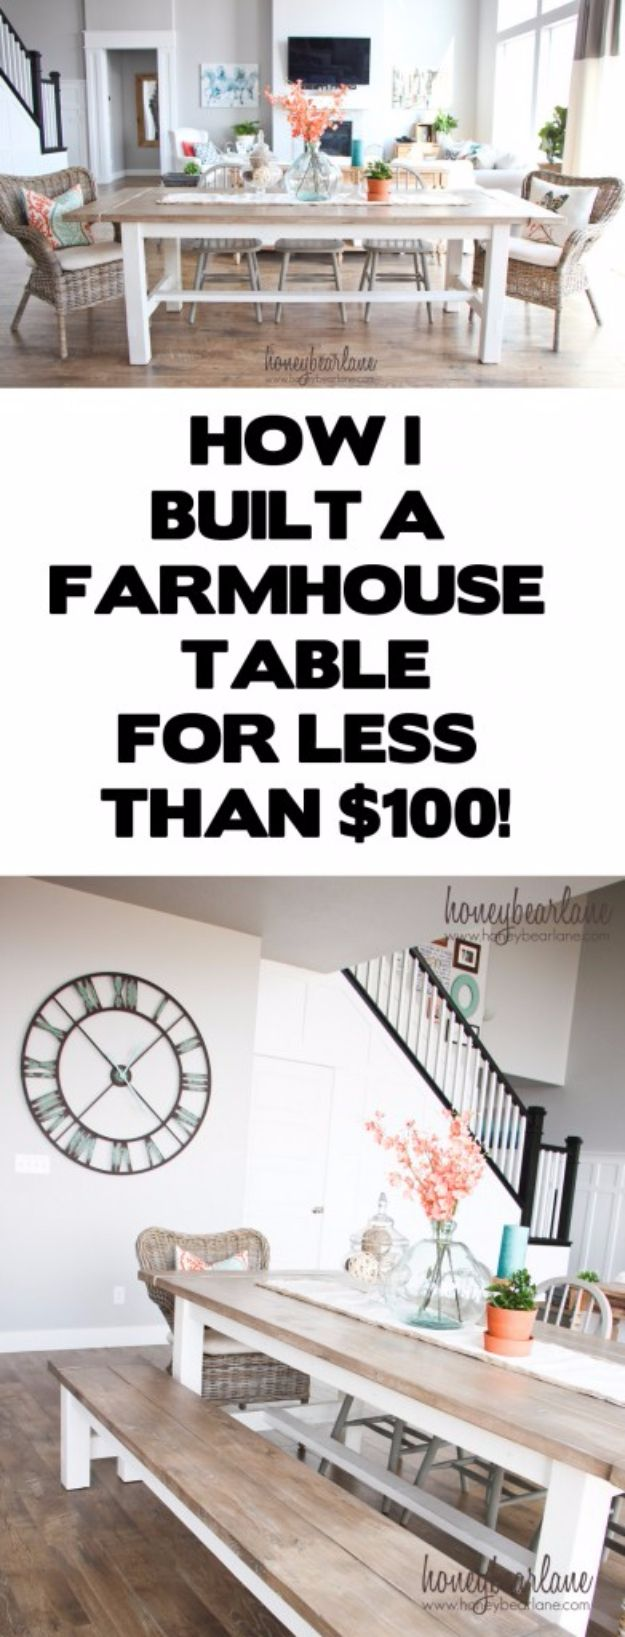 DIY Dining Room Table Projects - DIY Farmhouse Table For $100 - Creative Do It Yourself Tables and Ideas You Can Make For Your Kitchen or Dining Area. Easy Step by Step Tutorials that Are Perfect For Those On A Budget http://diyjoy.com/diy-dining-room-table-projects